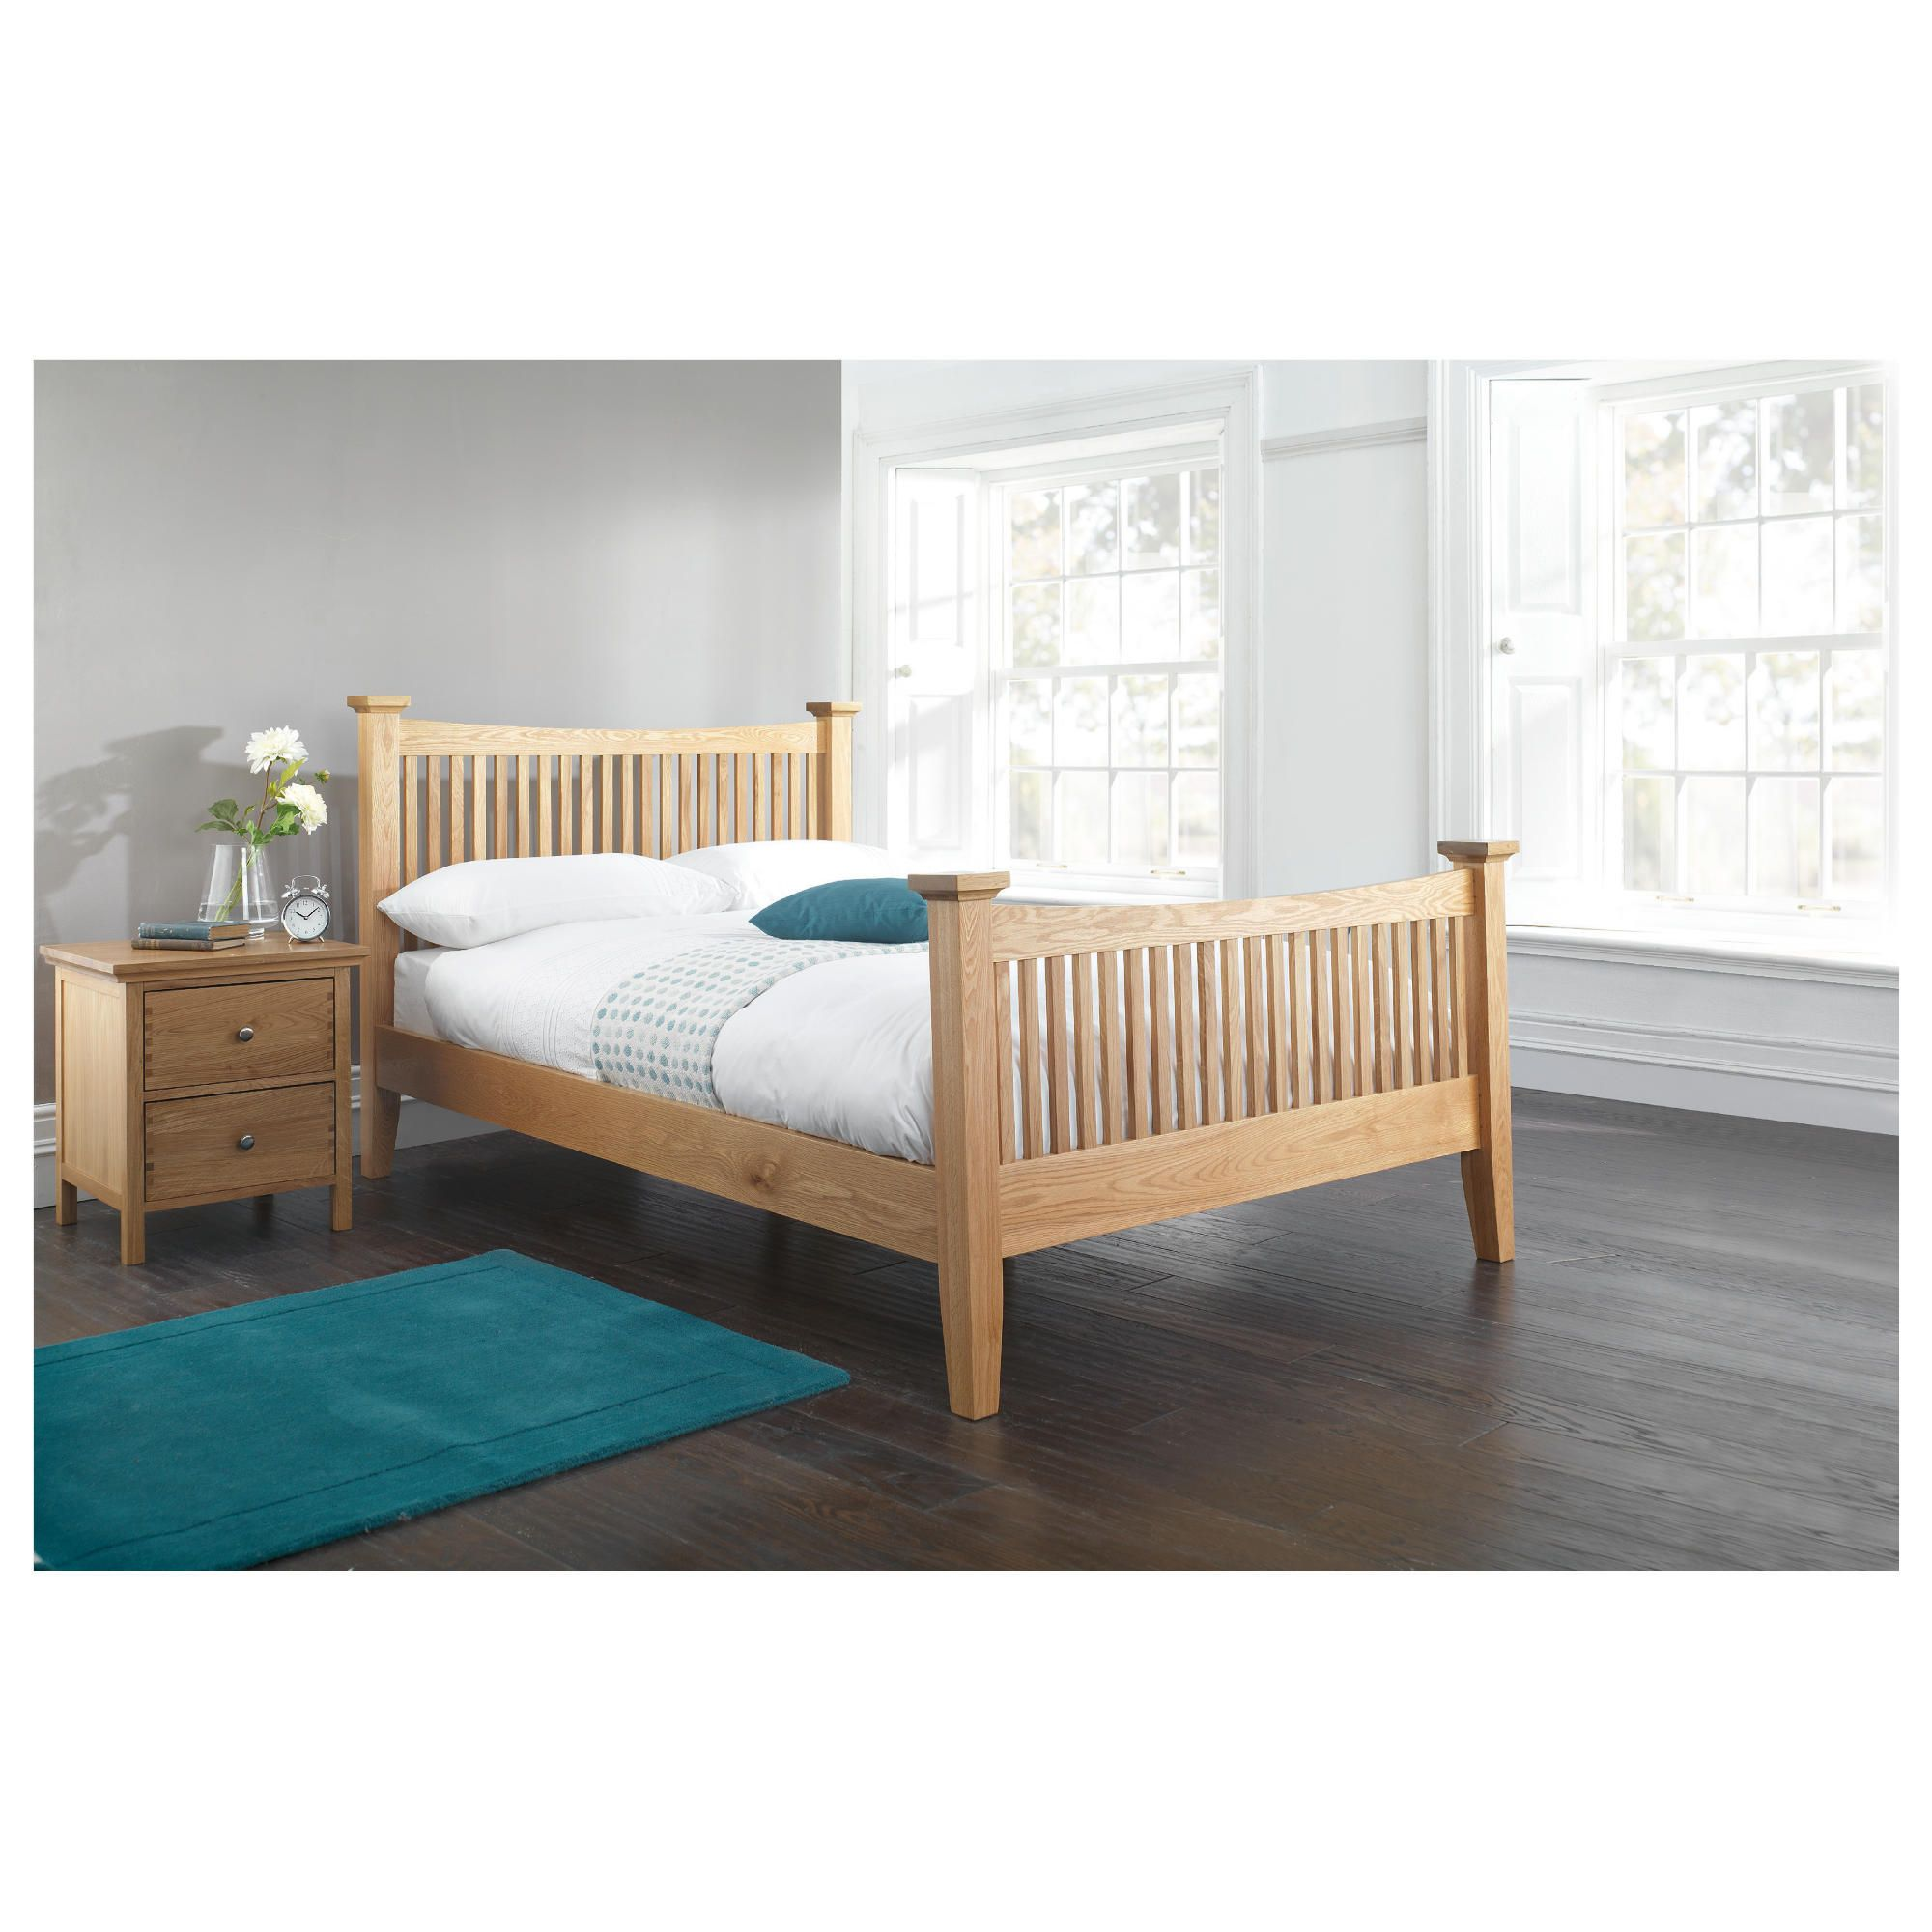 Hampstead King Bed Frame, Oak at Tesco Direct